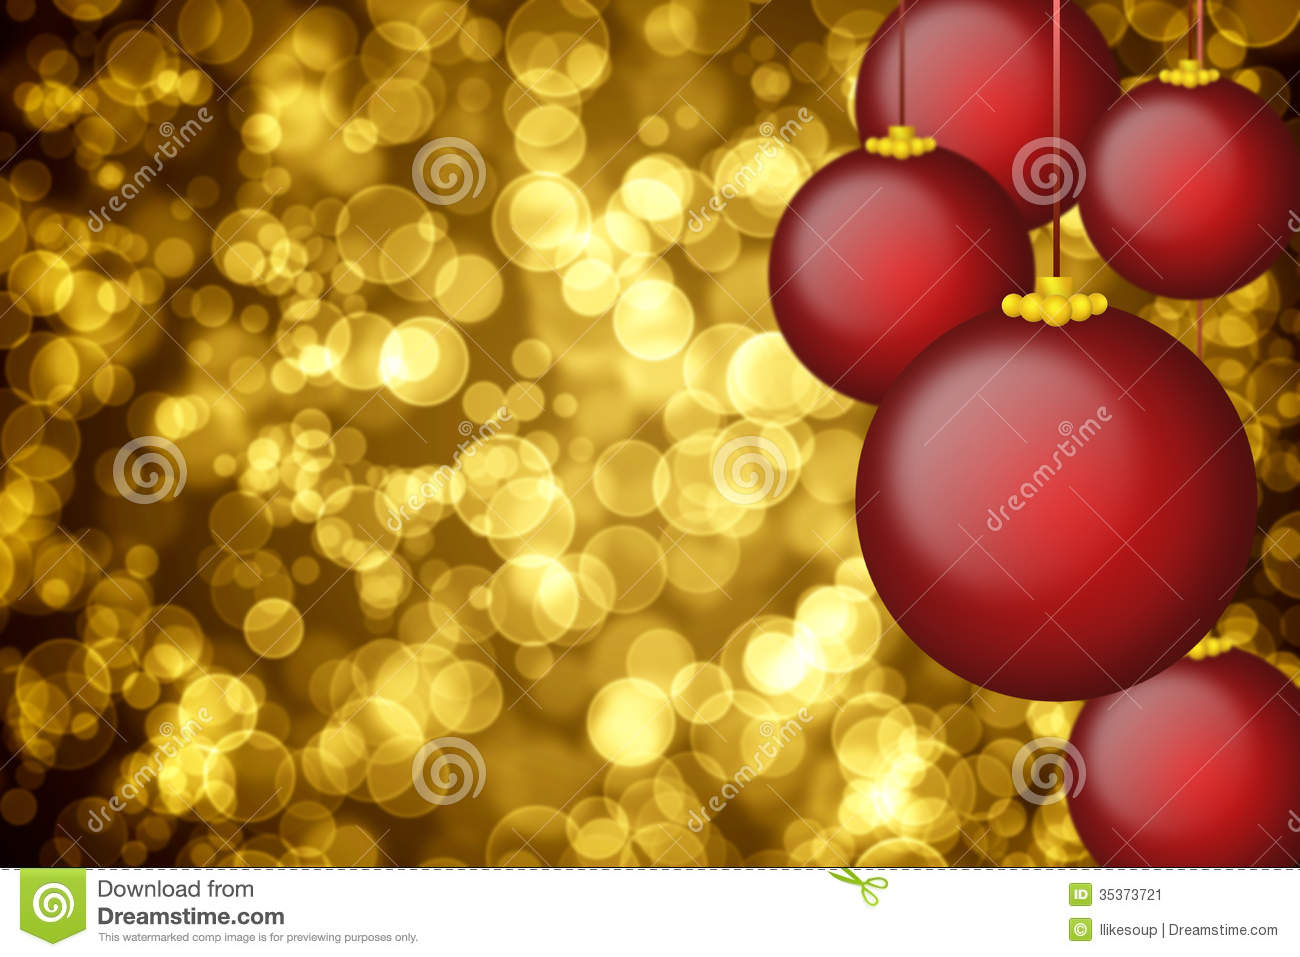 Christmas ornaments background golden holiday background with